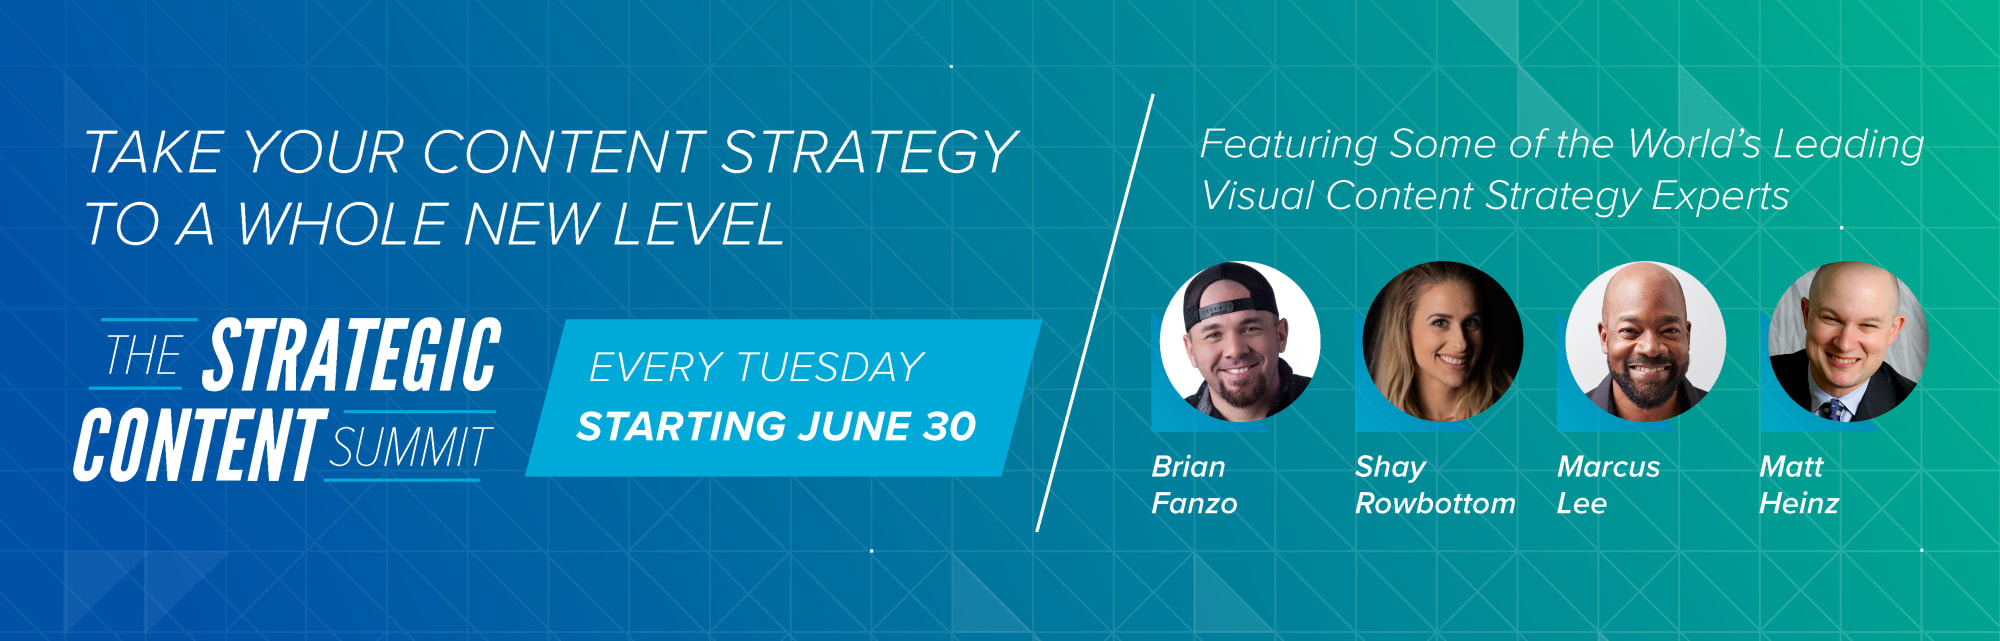 Strategic Content Summit Banner with Featured Speakers